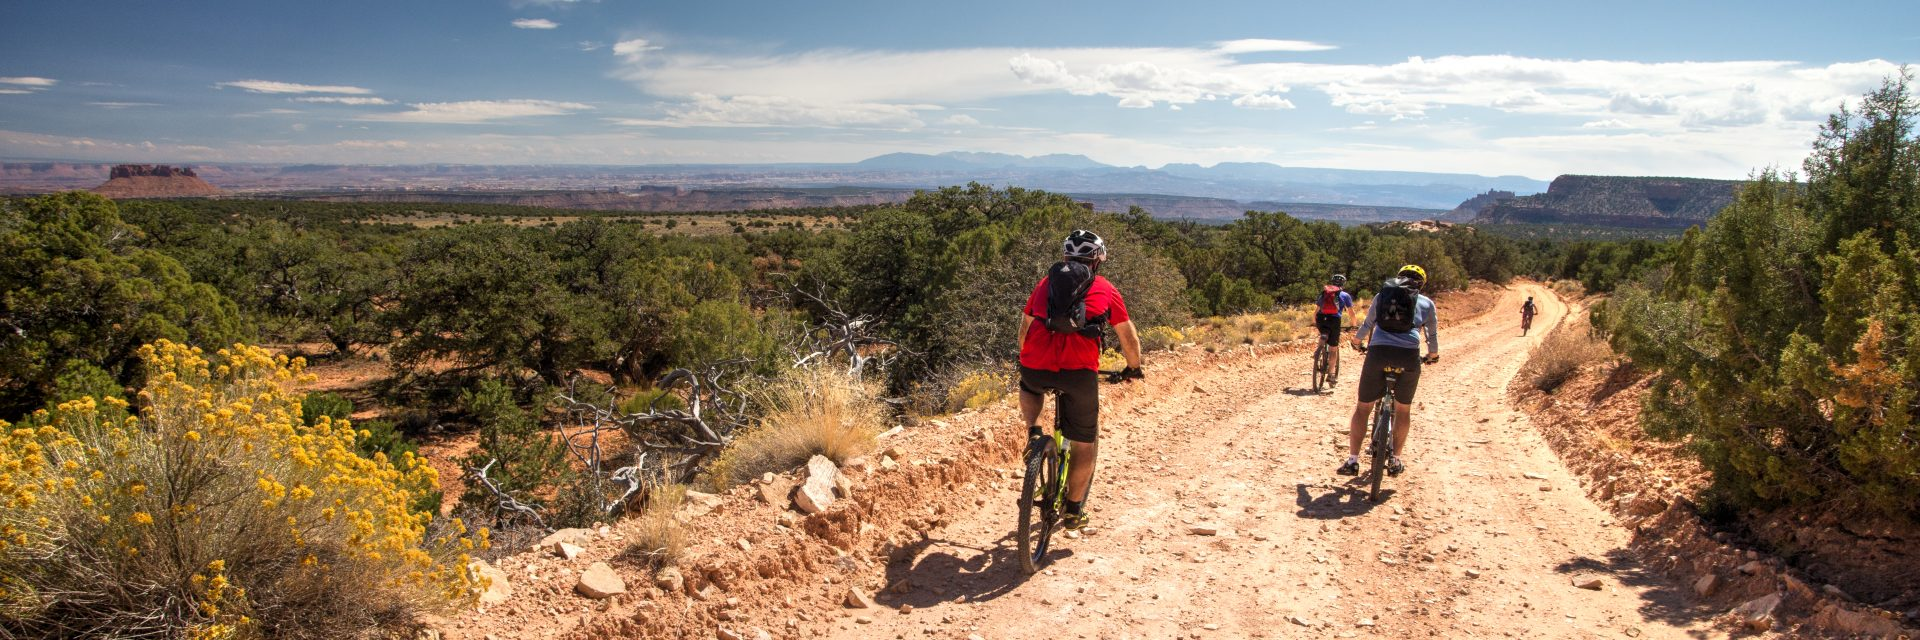 Riders head toward Flint Seep with views of Elk Ridge and The Abajo Mountains in the distance during day one of a 5-day guided mountain bike tour of The Maze, Canyonlands NP